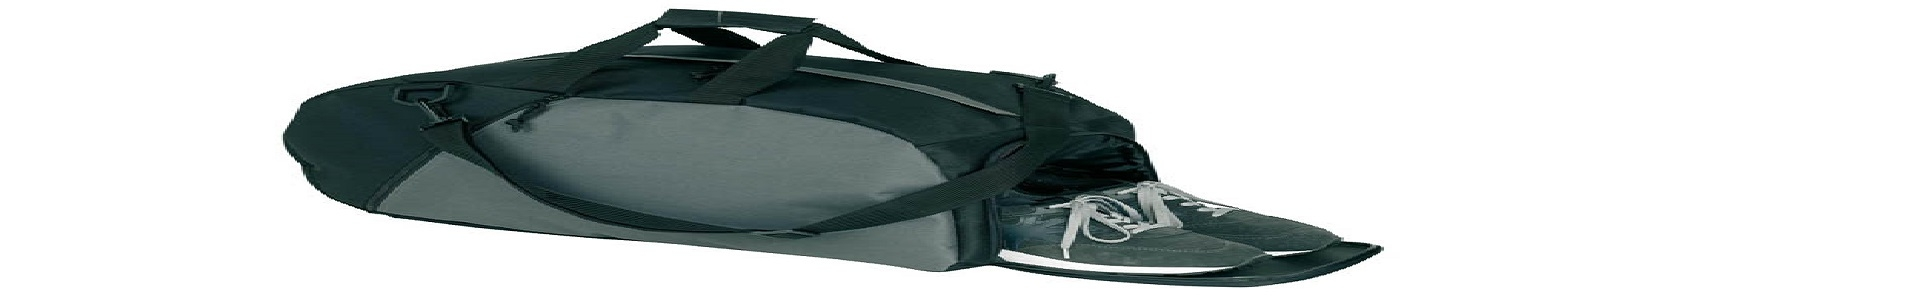 ExtraOffre Sport Banner Accessories Boot Bags Category